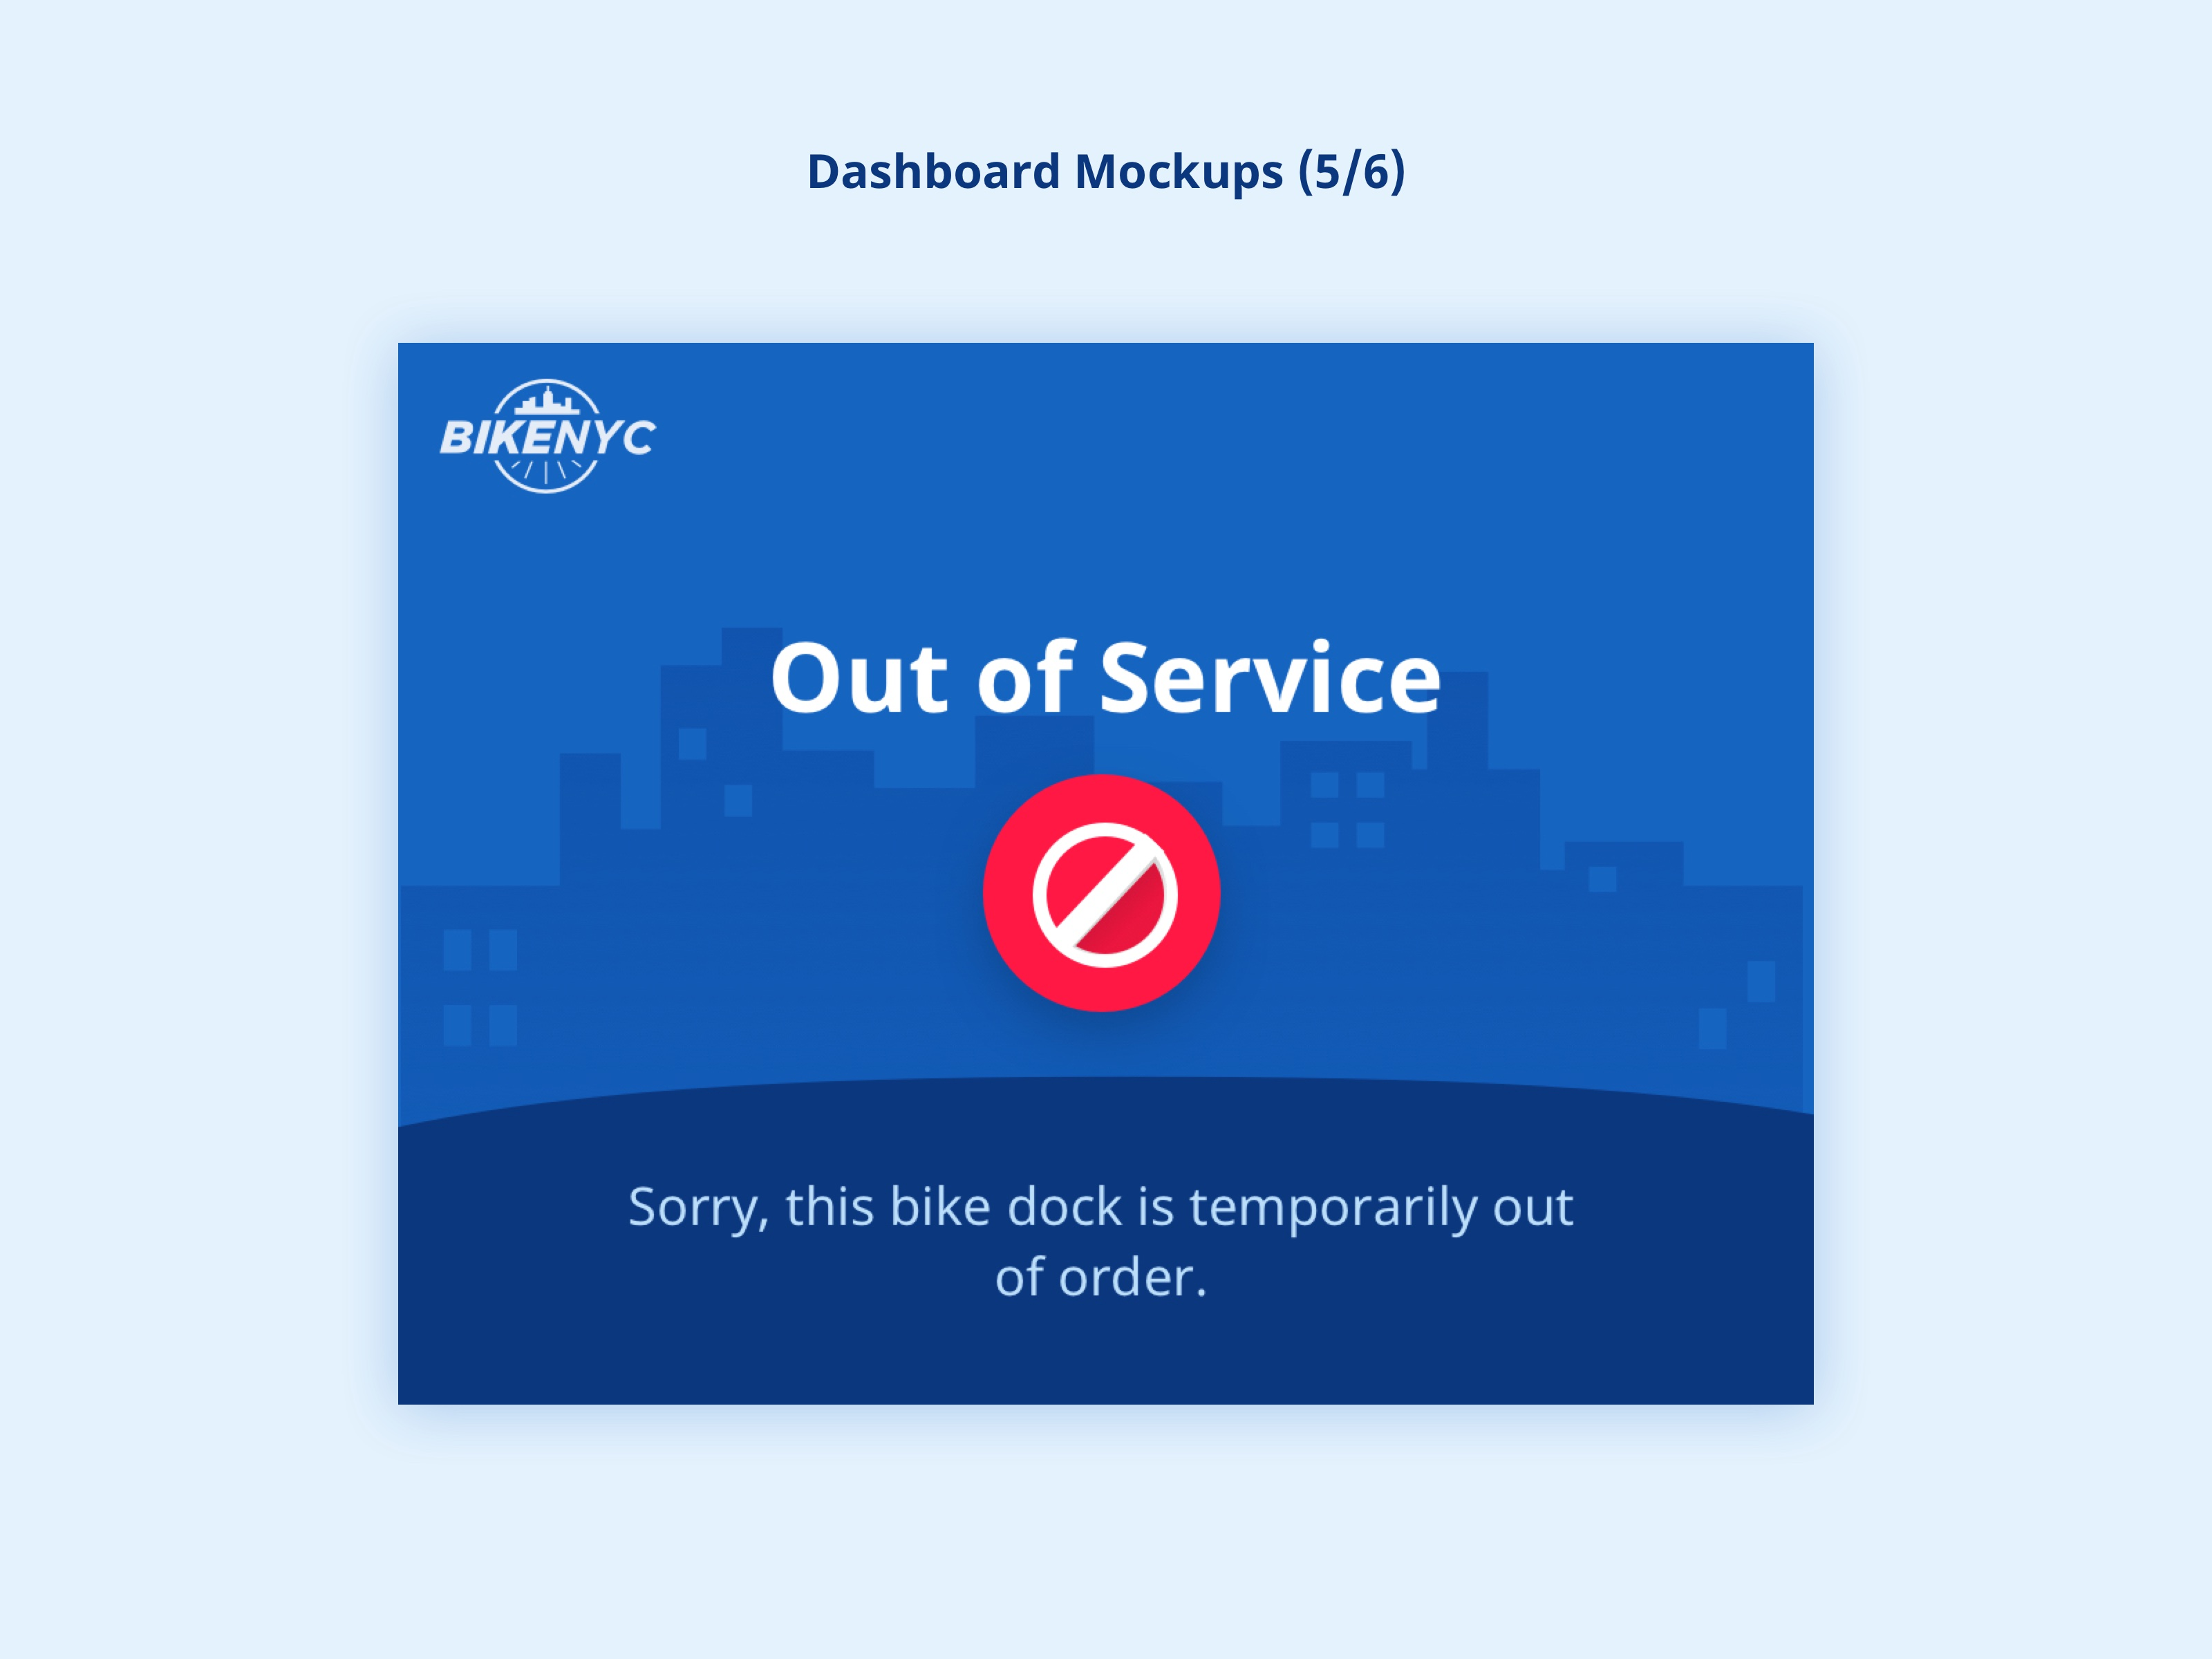 BikeNYC Dashboard - Out of Service